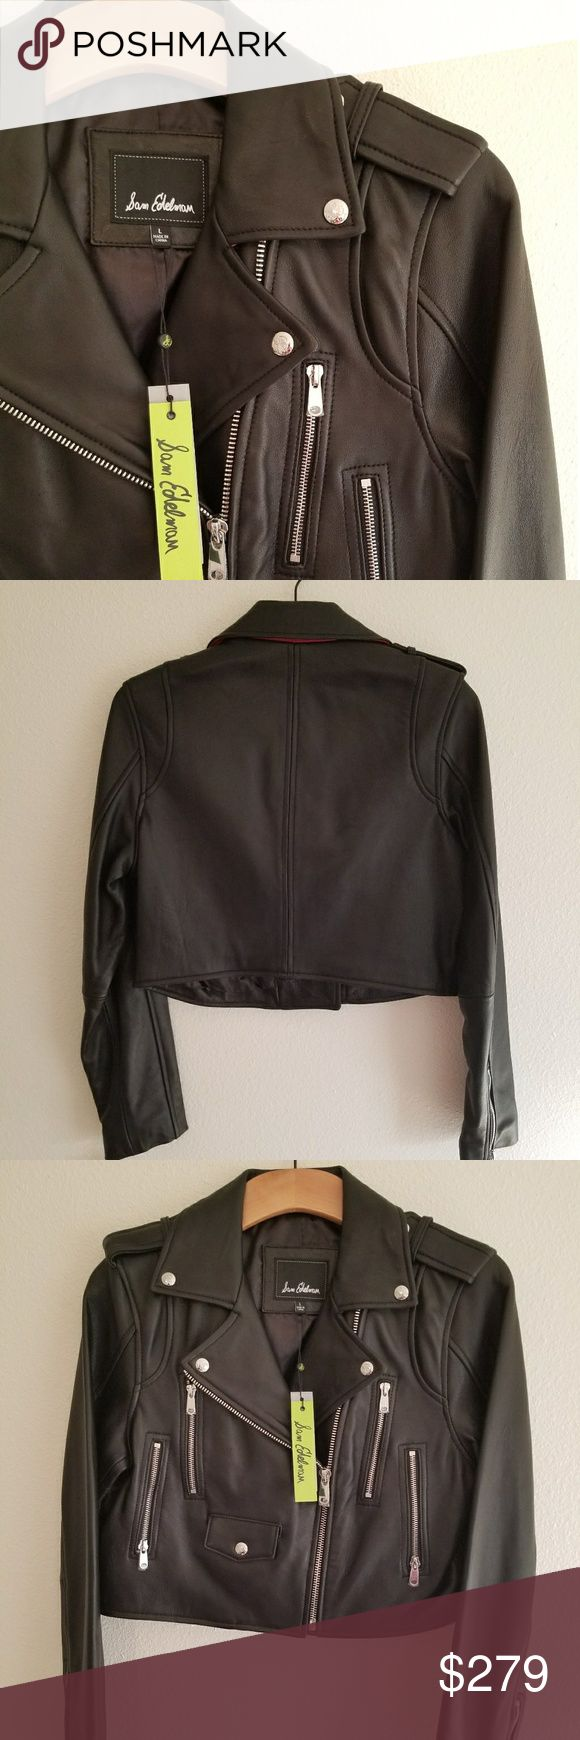 NWT* Sam Edelman Leather Jacket* NWT* Sam Edelman Leather Jacket*A bright crimson undercollar revs up the road-ready swagger of a biker jacket crafted from supple lambskin leather. Size: Large *Front zip closure*Notch collar*Epaulets*Long sleeves with zip cuffs*Four front zip pockets; snap-flap ticket pocket*Lined Genuine lambskin leather* Reasonable Offers Accepted* Sold out* Bundle & Save* You never know until you offer* Sam Edelman Jackets & Coats